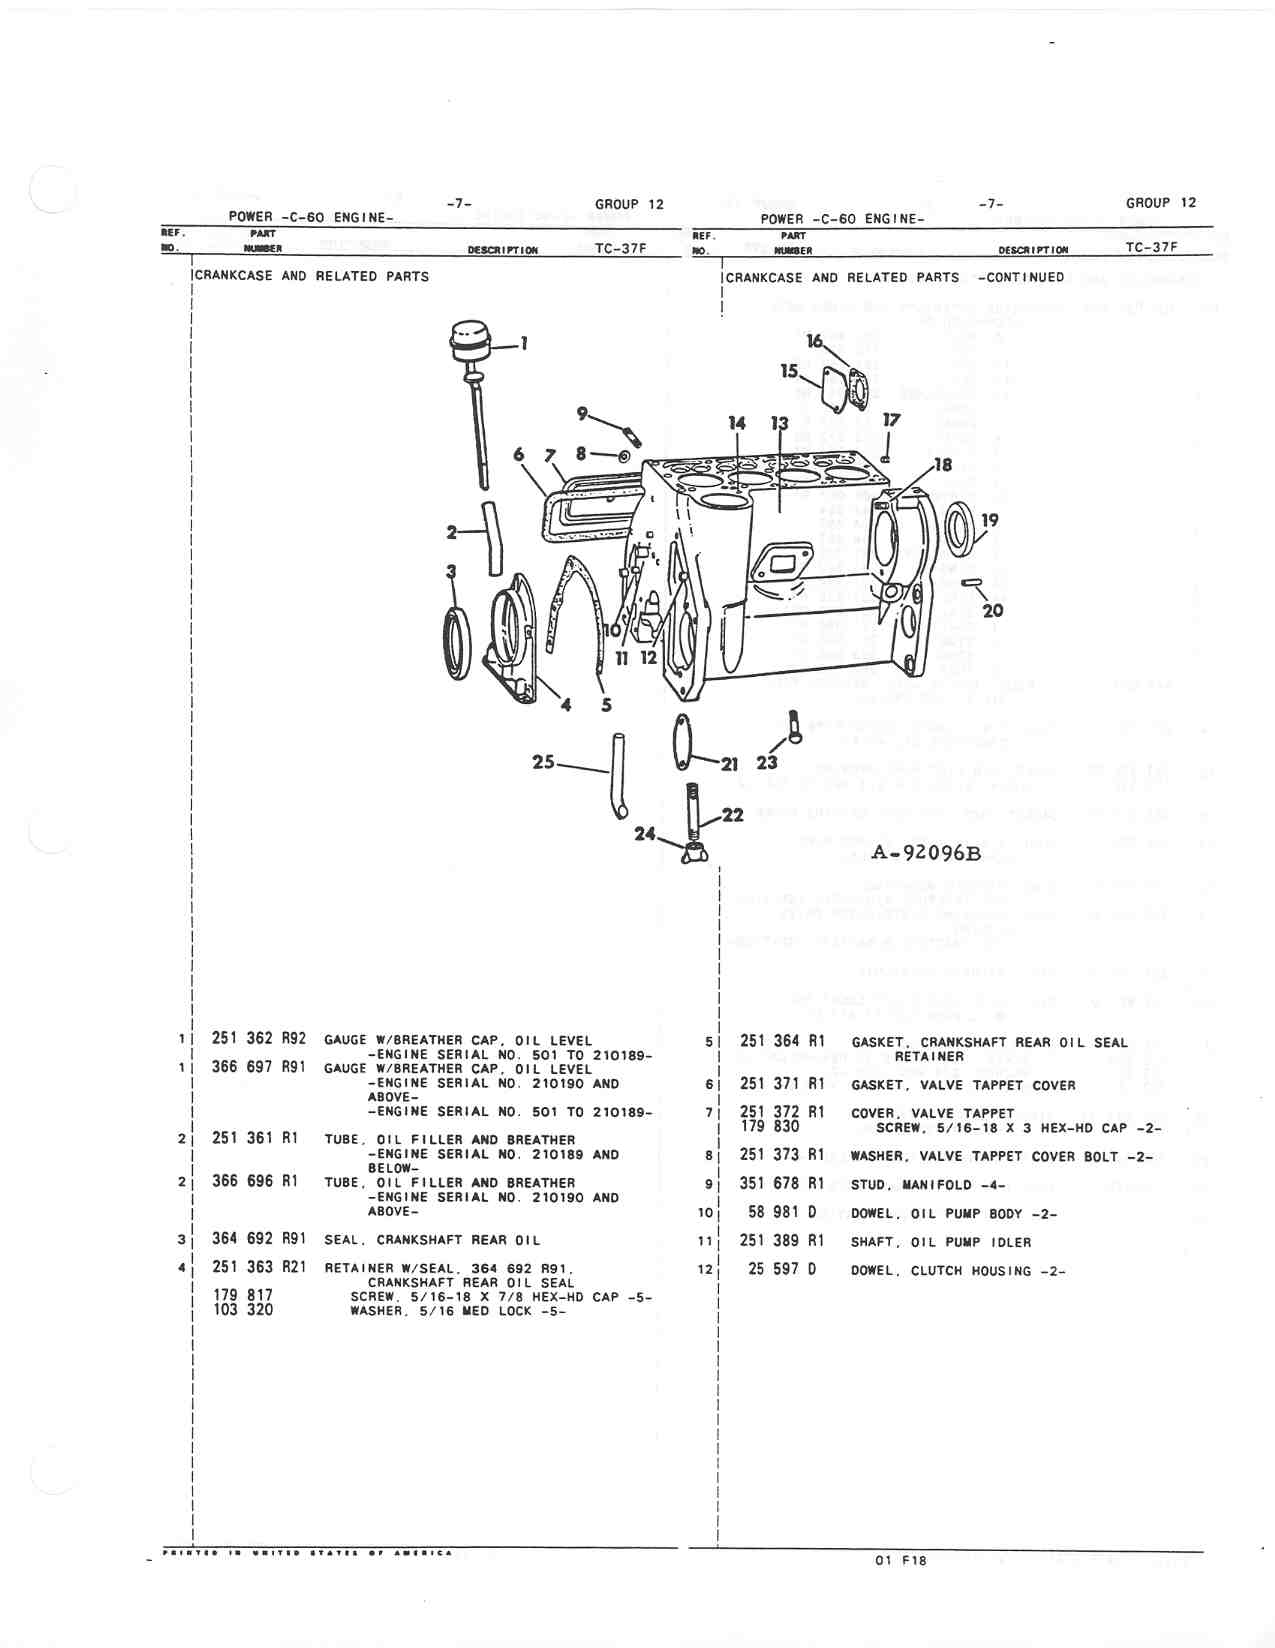 Mccormick Farmall Cub Distributor Diagram - Wiring Library •